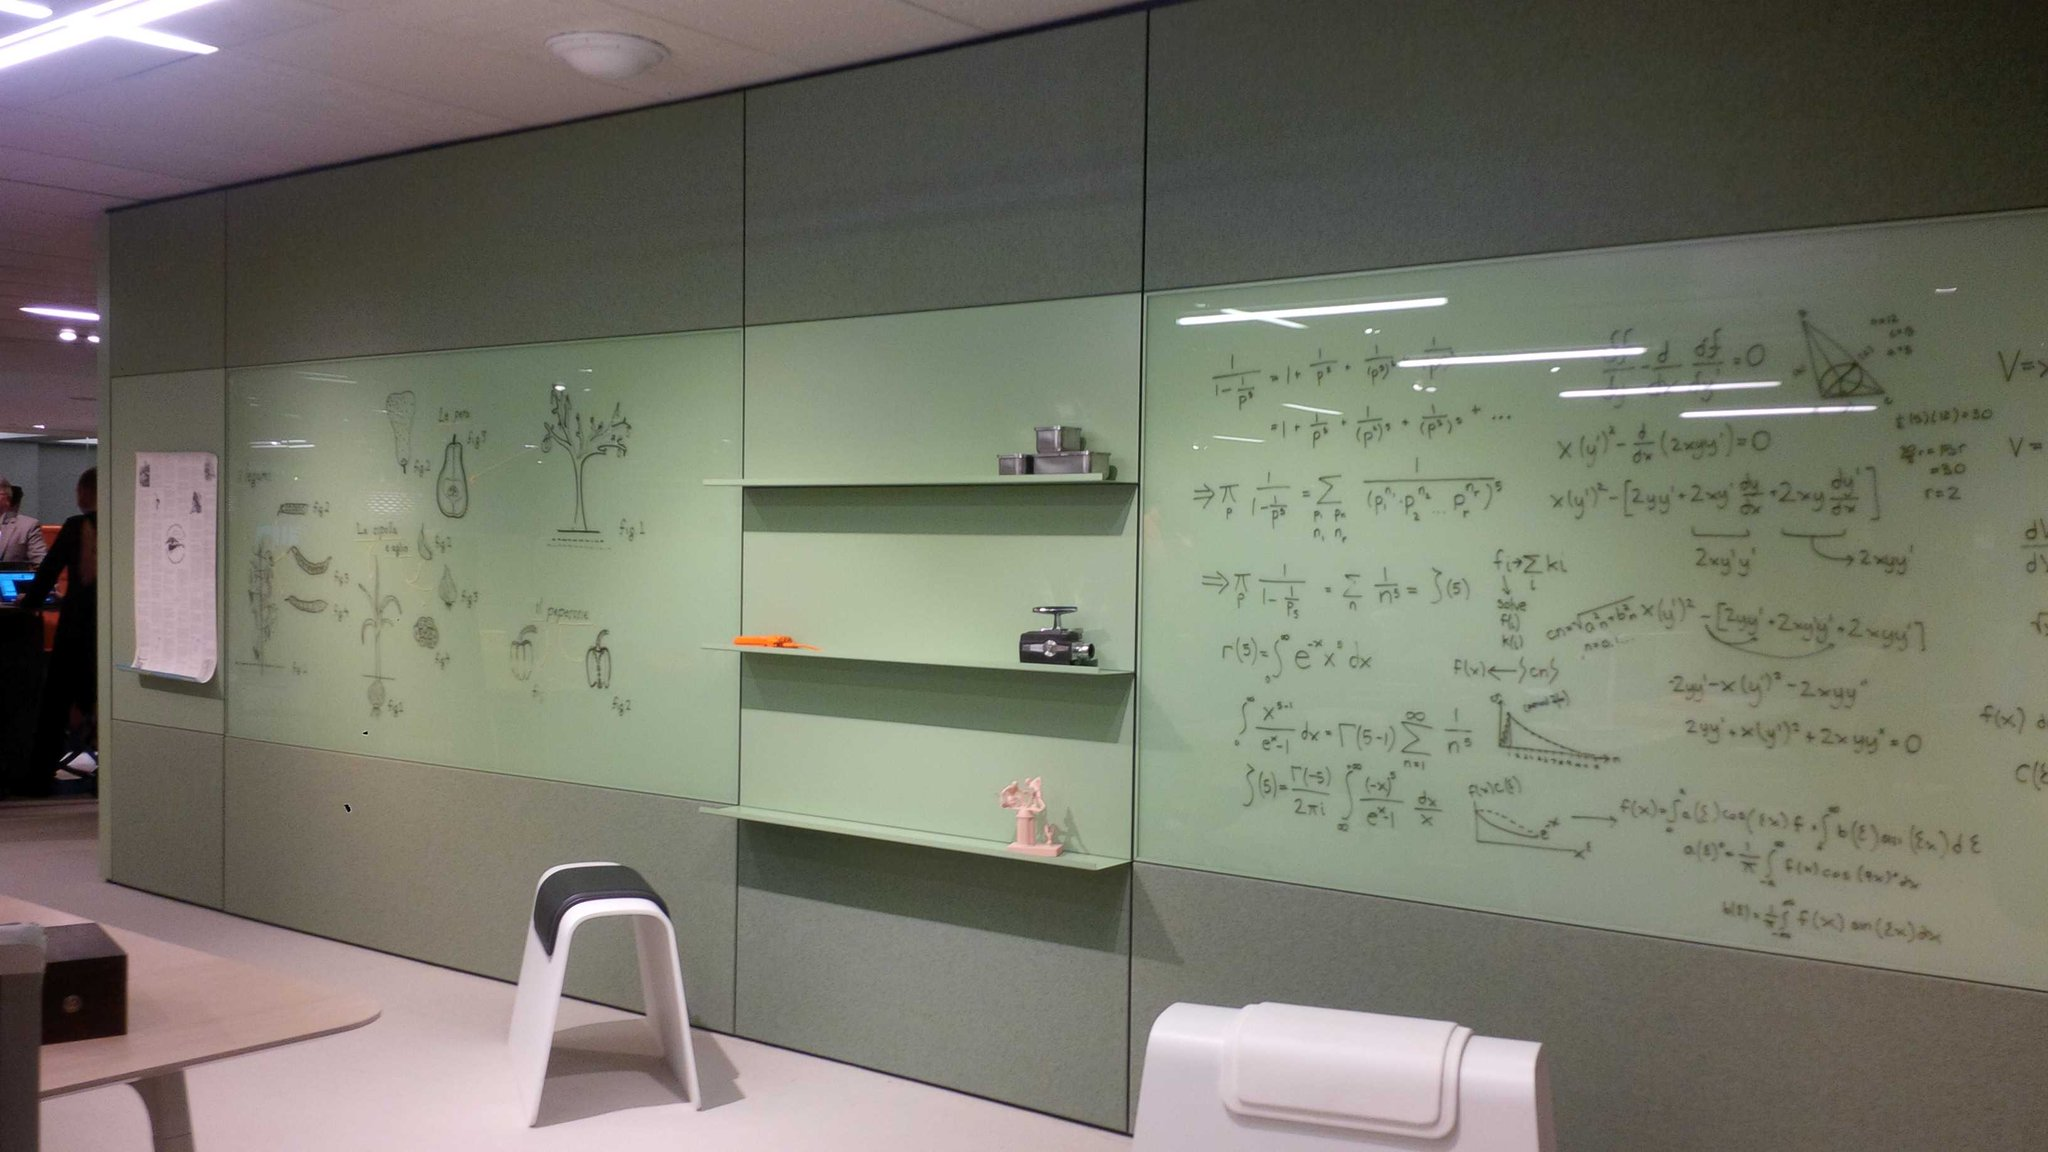 Kw interior design on twitter very nice application from for Back painted glass design